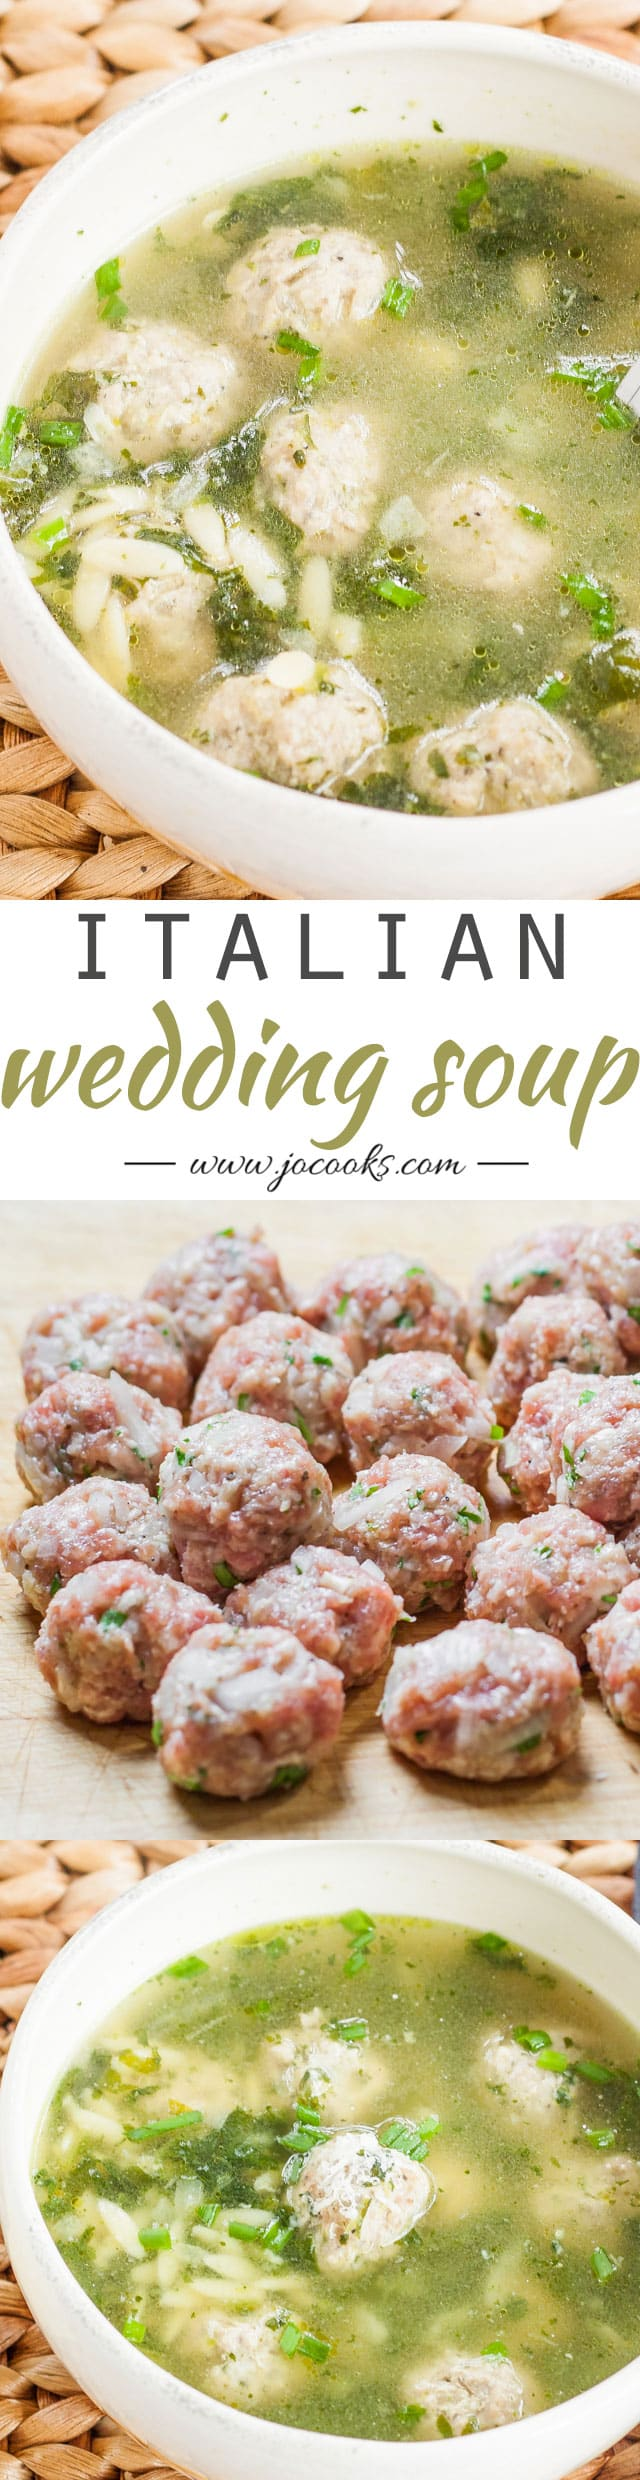 italian-wedding-soup-collage